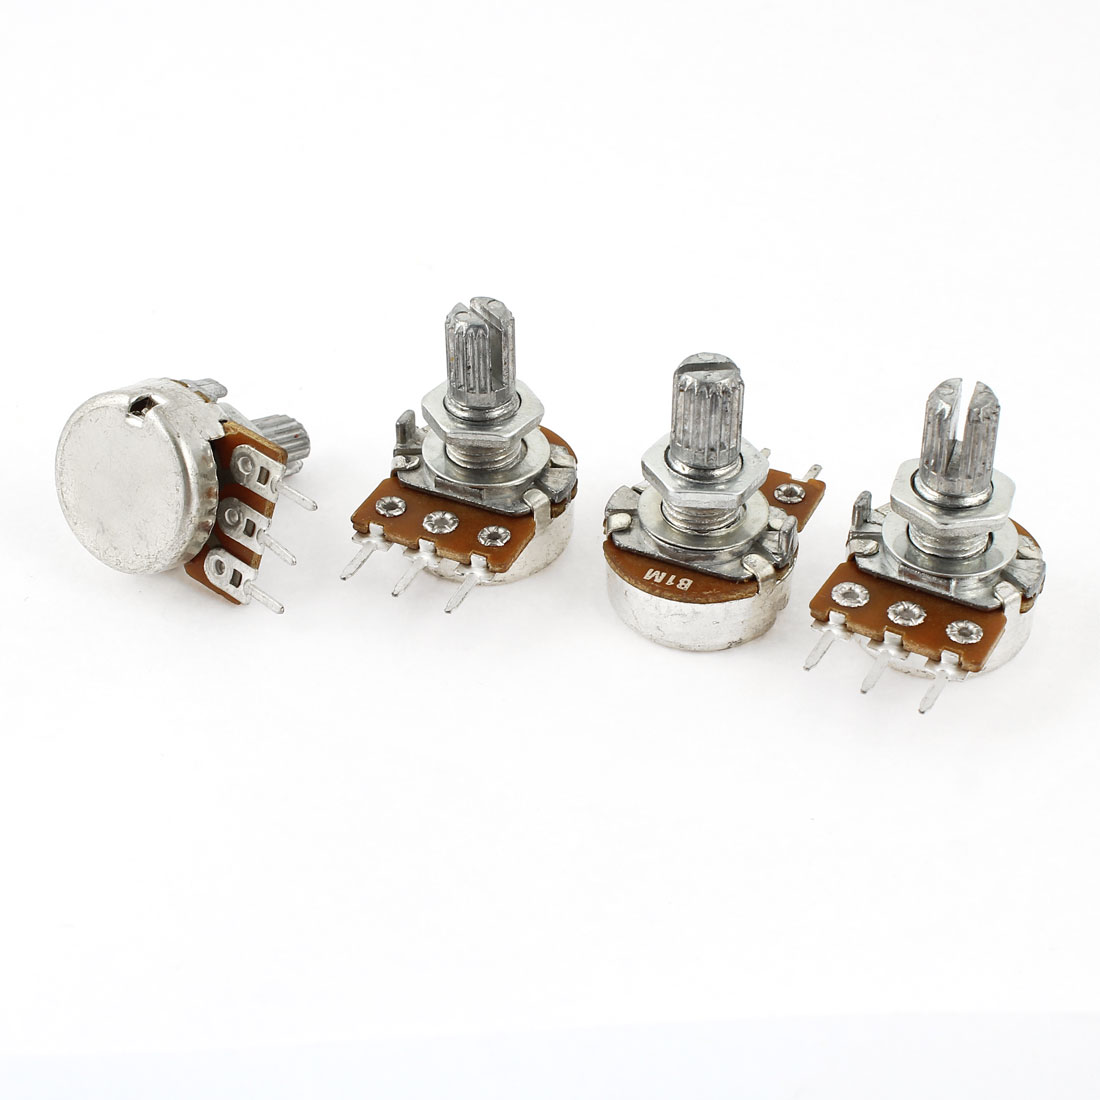 4 Pcs Single Linear Control Volume Potentiometers 1M Ohm 15mm Shaft WH148